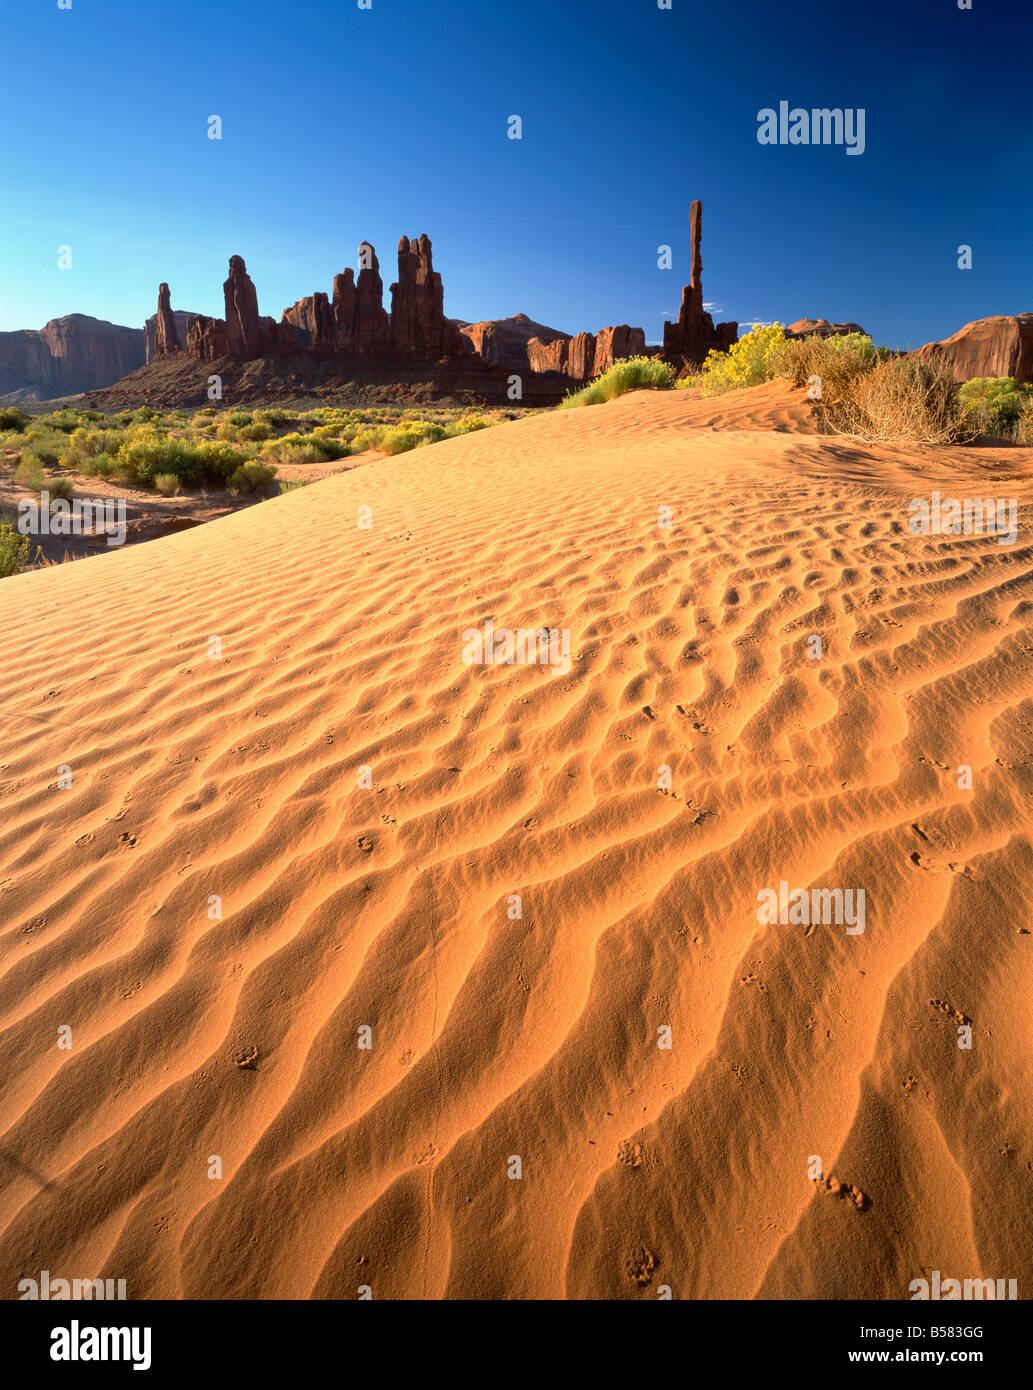 Totem Pole and Sand Springs, Monument Valley Tribal Park, Arizona, United States of America, North America - Stock Image